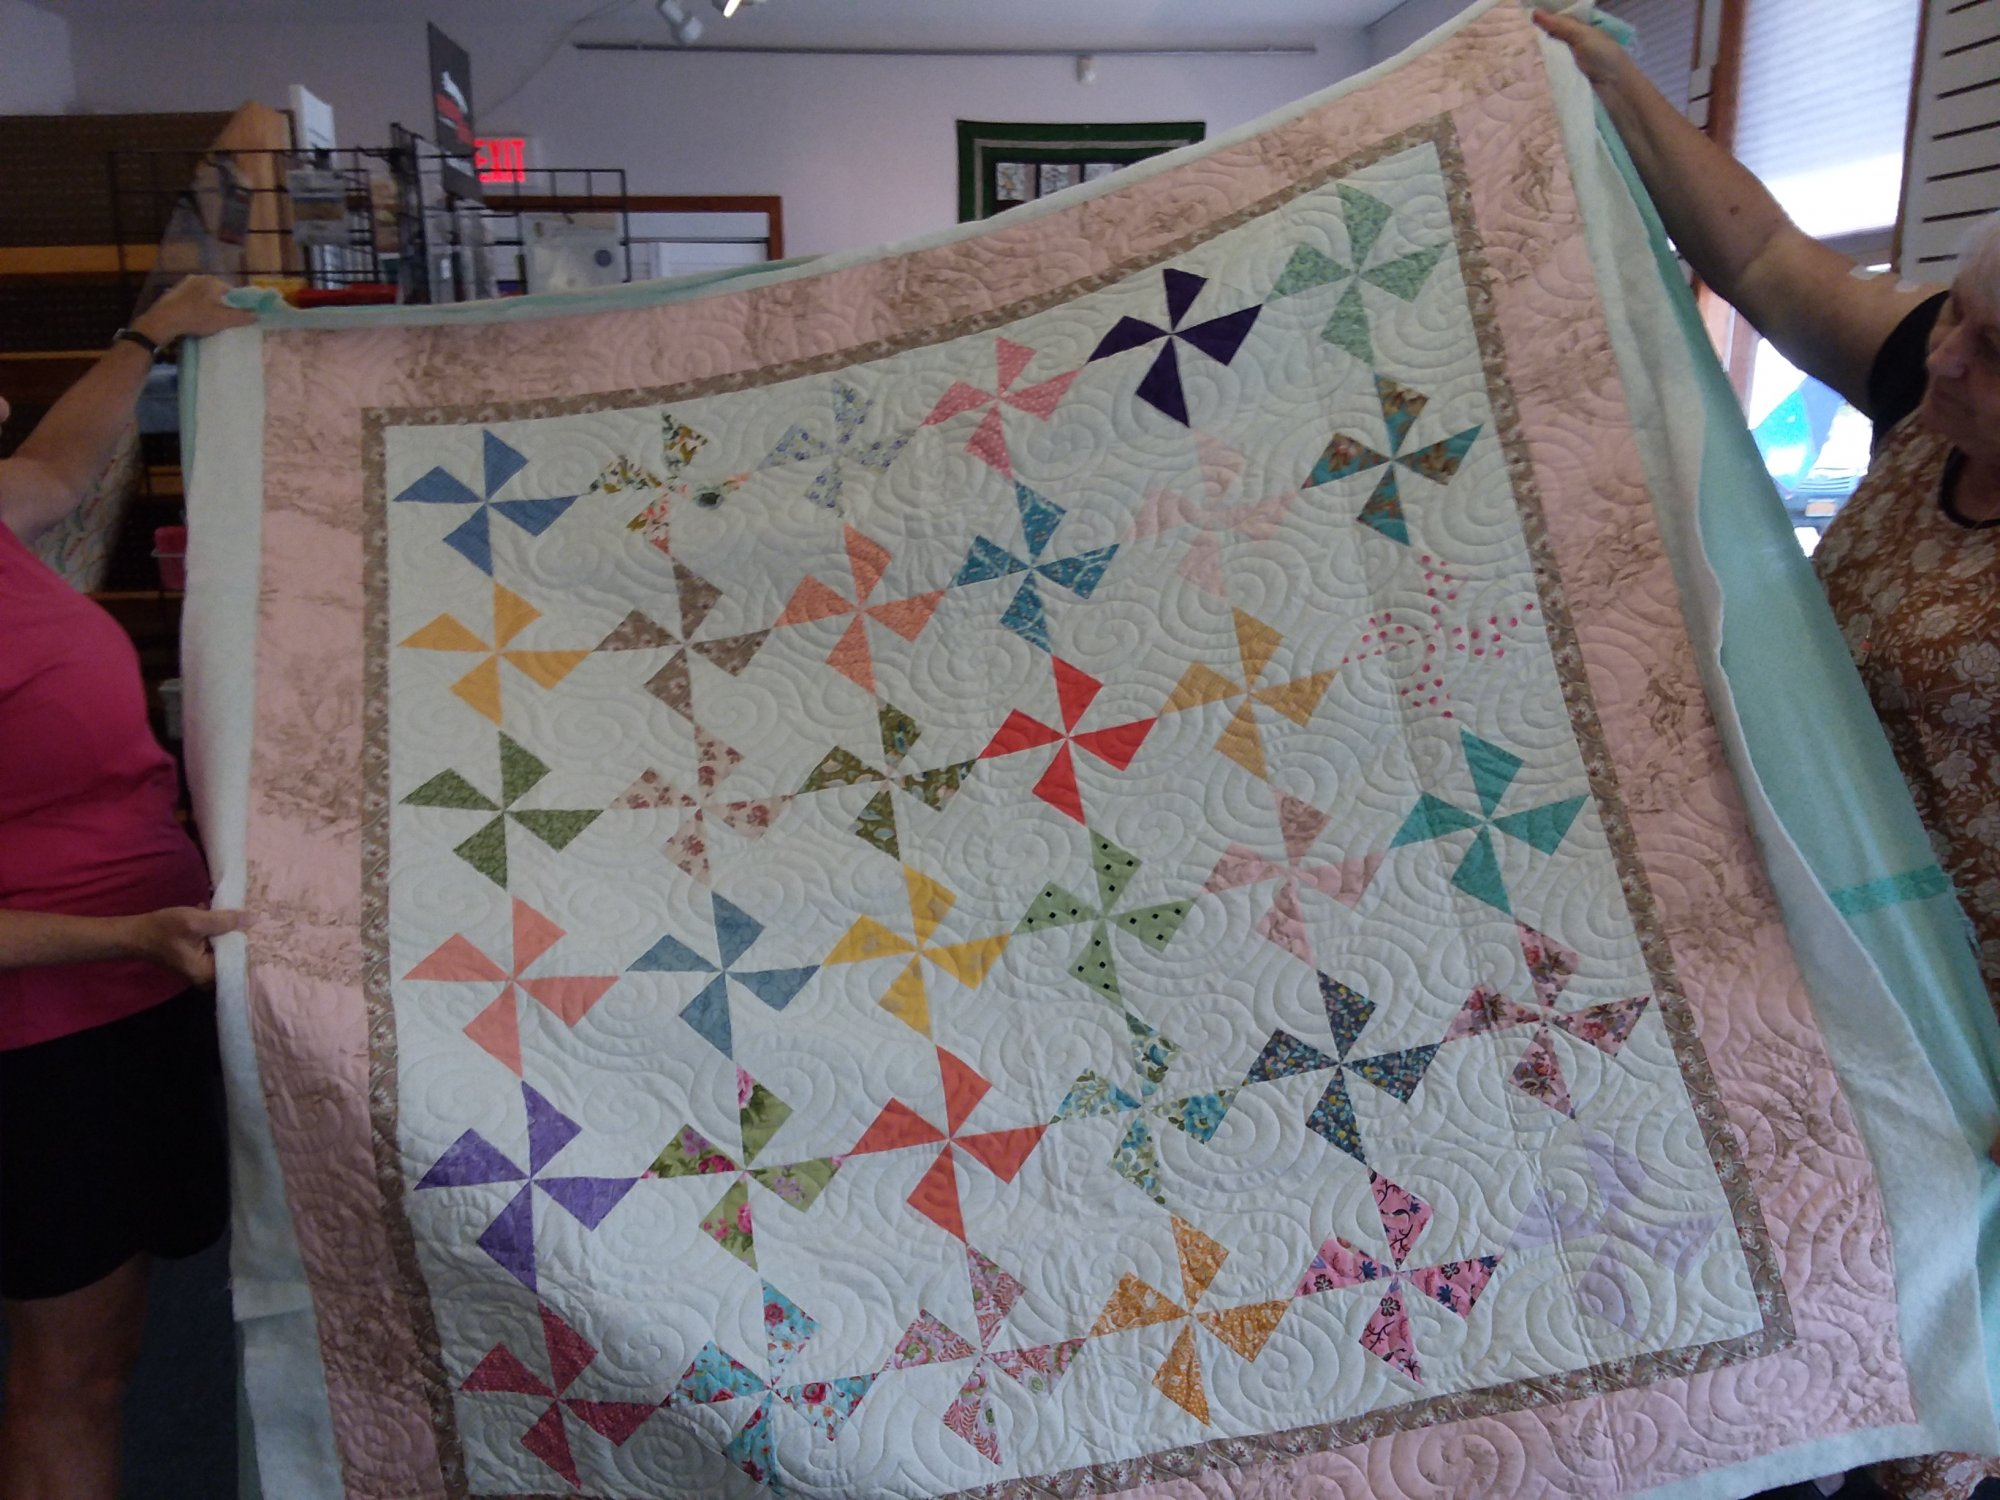 Quiltbug Is An Quilt Fabric Store Carrying 100 Cotton Fabric